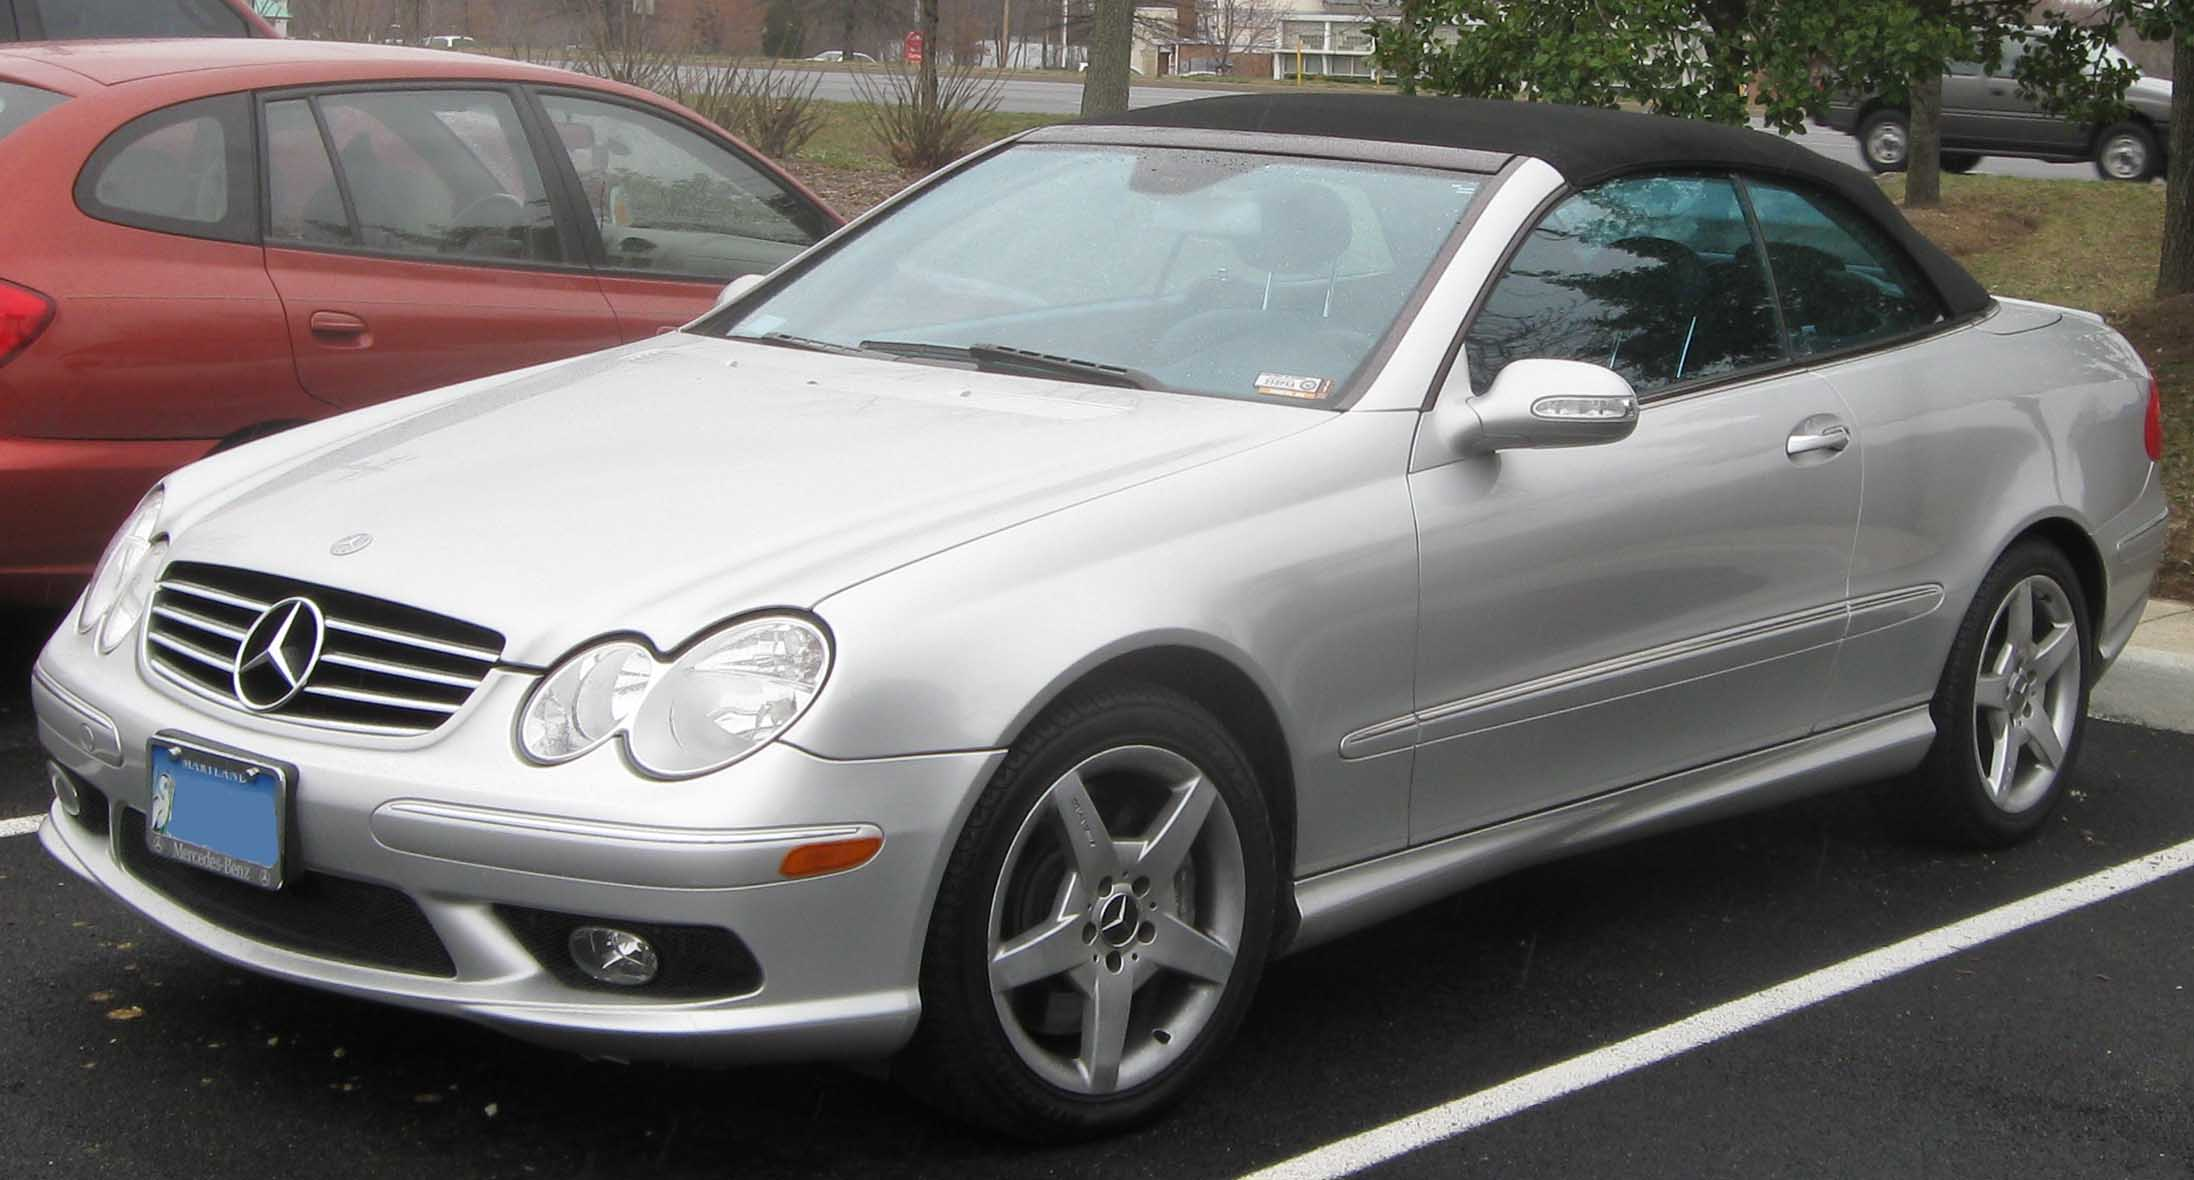 Image gallery 2009 mercedes benz clk 550 for Mercedes benz clk 2009